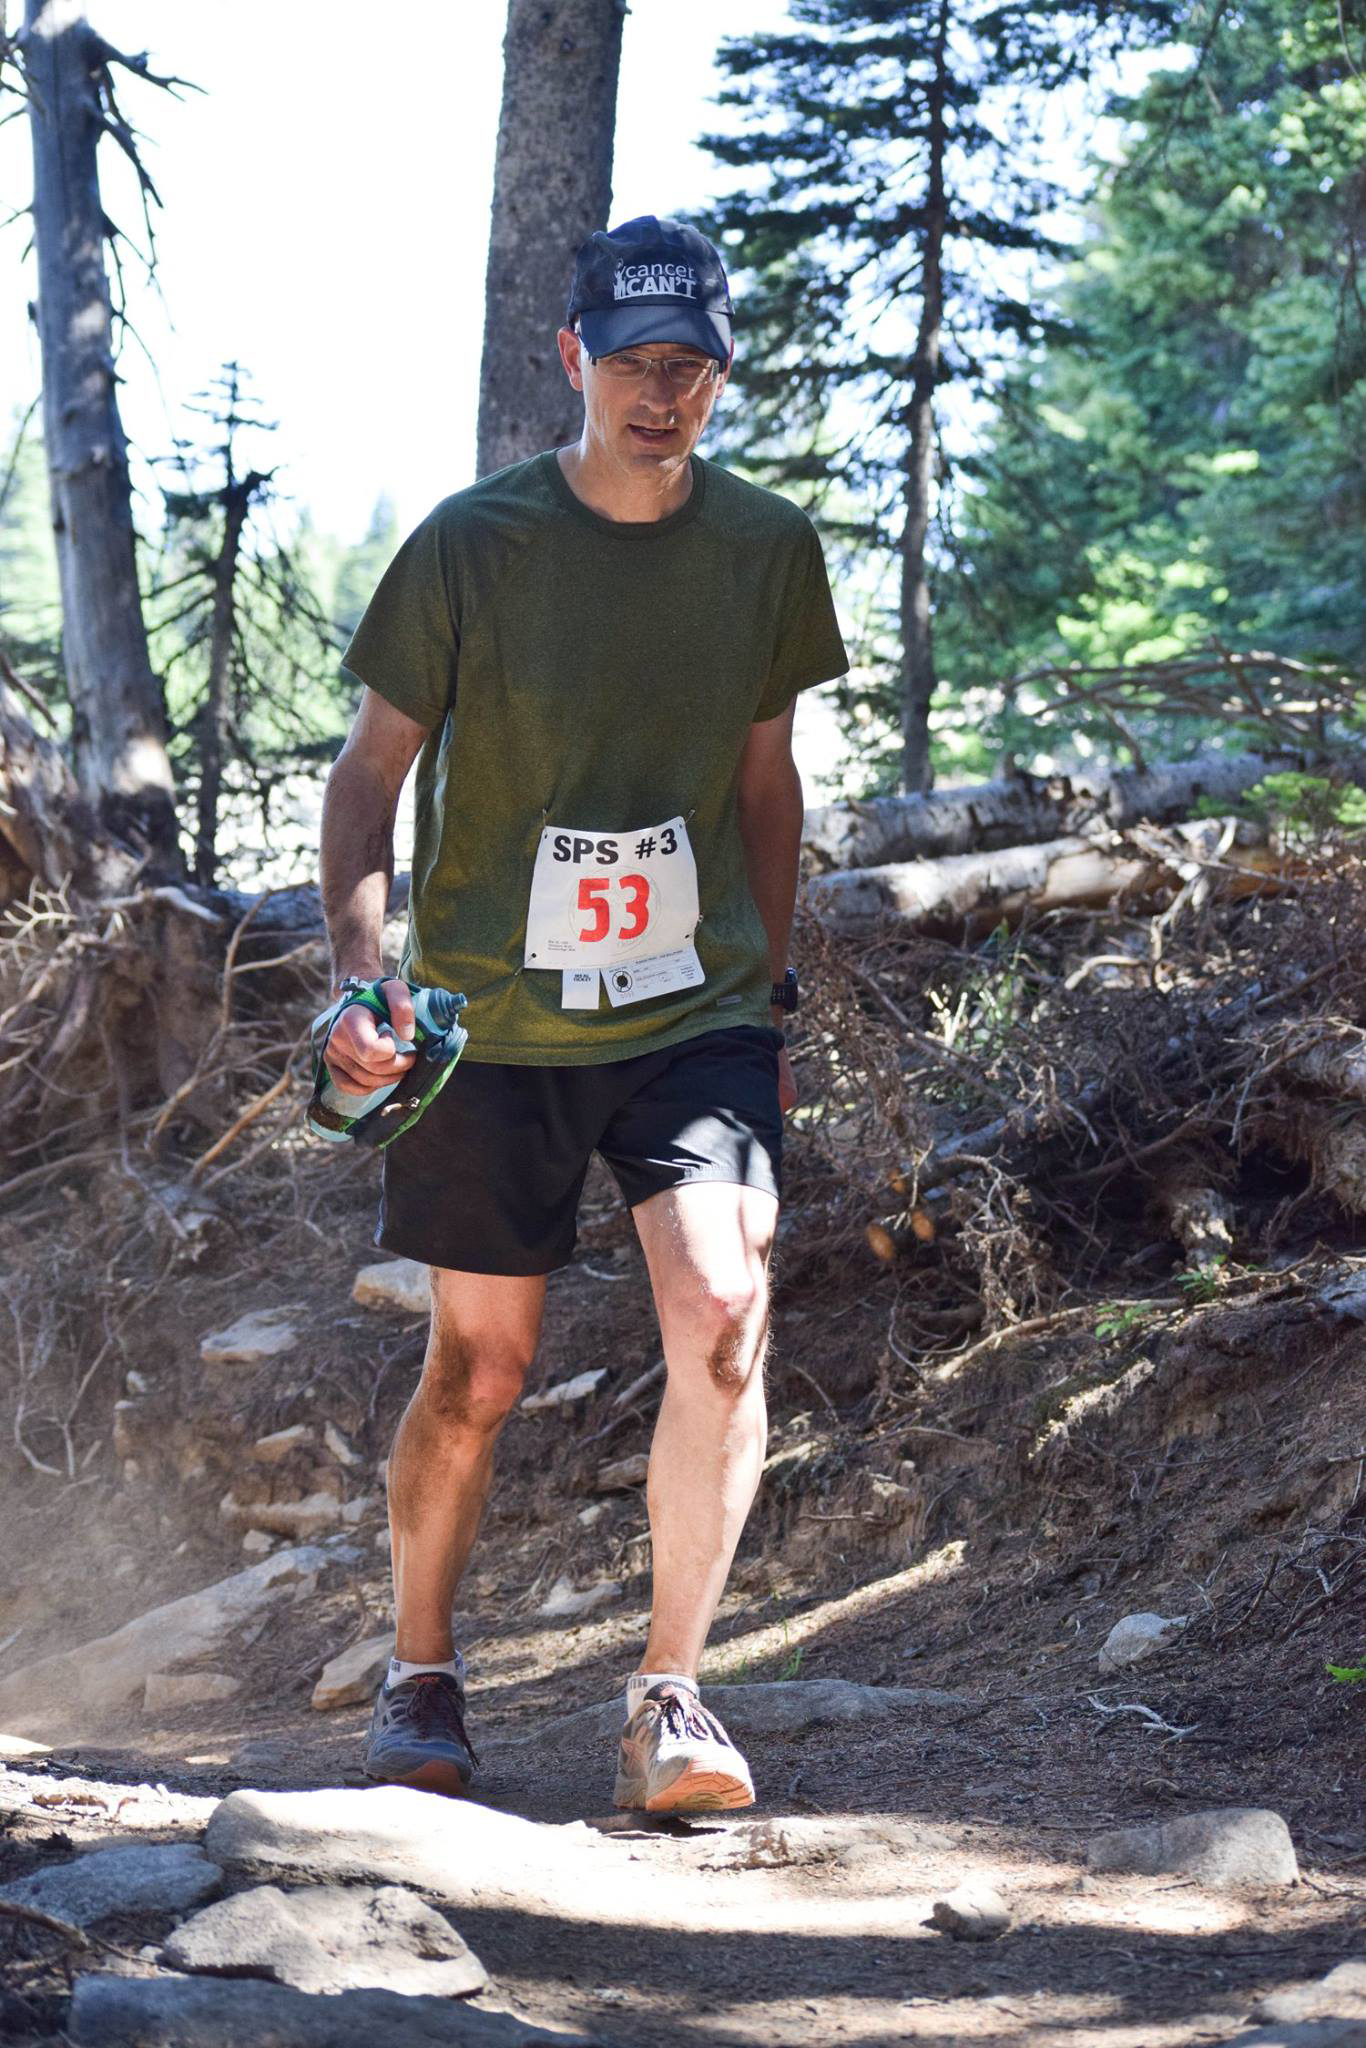 Thiessen at the Trail Maniacs Mt. Spokane State Park 25k in late July, 2017. The Trail Maniacs sponsored Thiessen's efforts by providing run entries throughout the season in preparation for his late-fall 50k goal. (Photo: Trail Maniacs.)